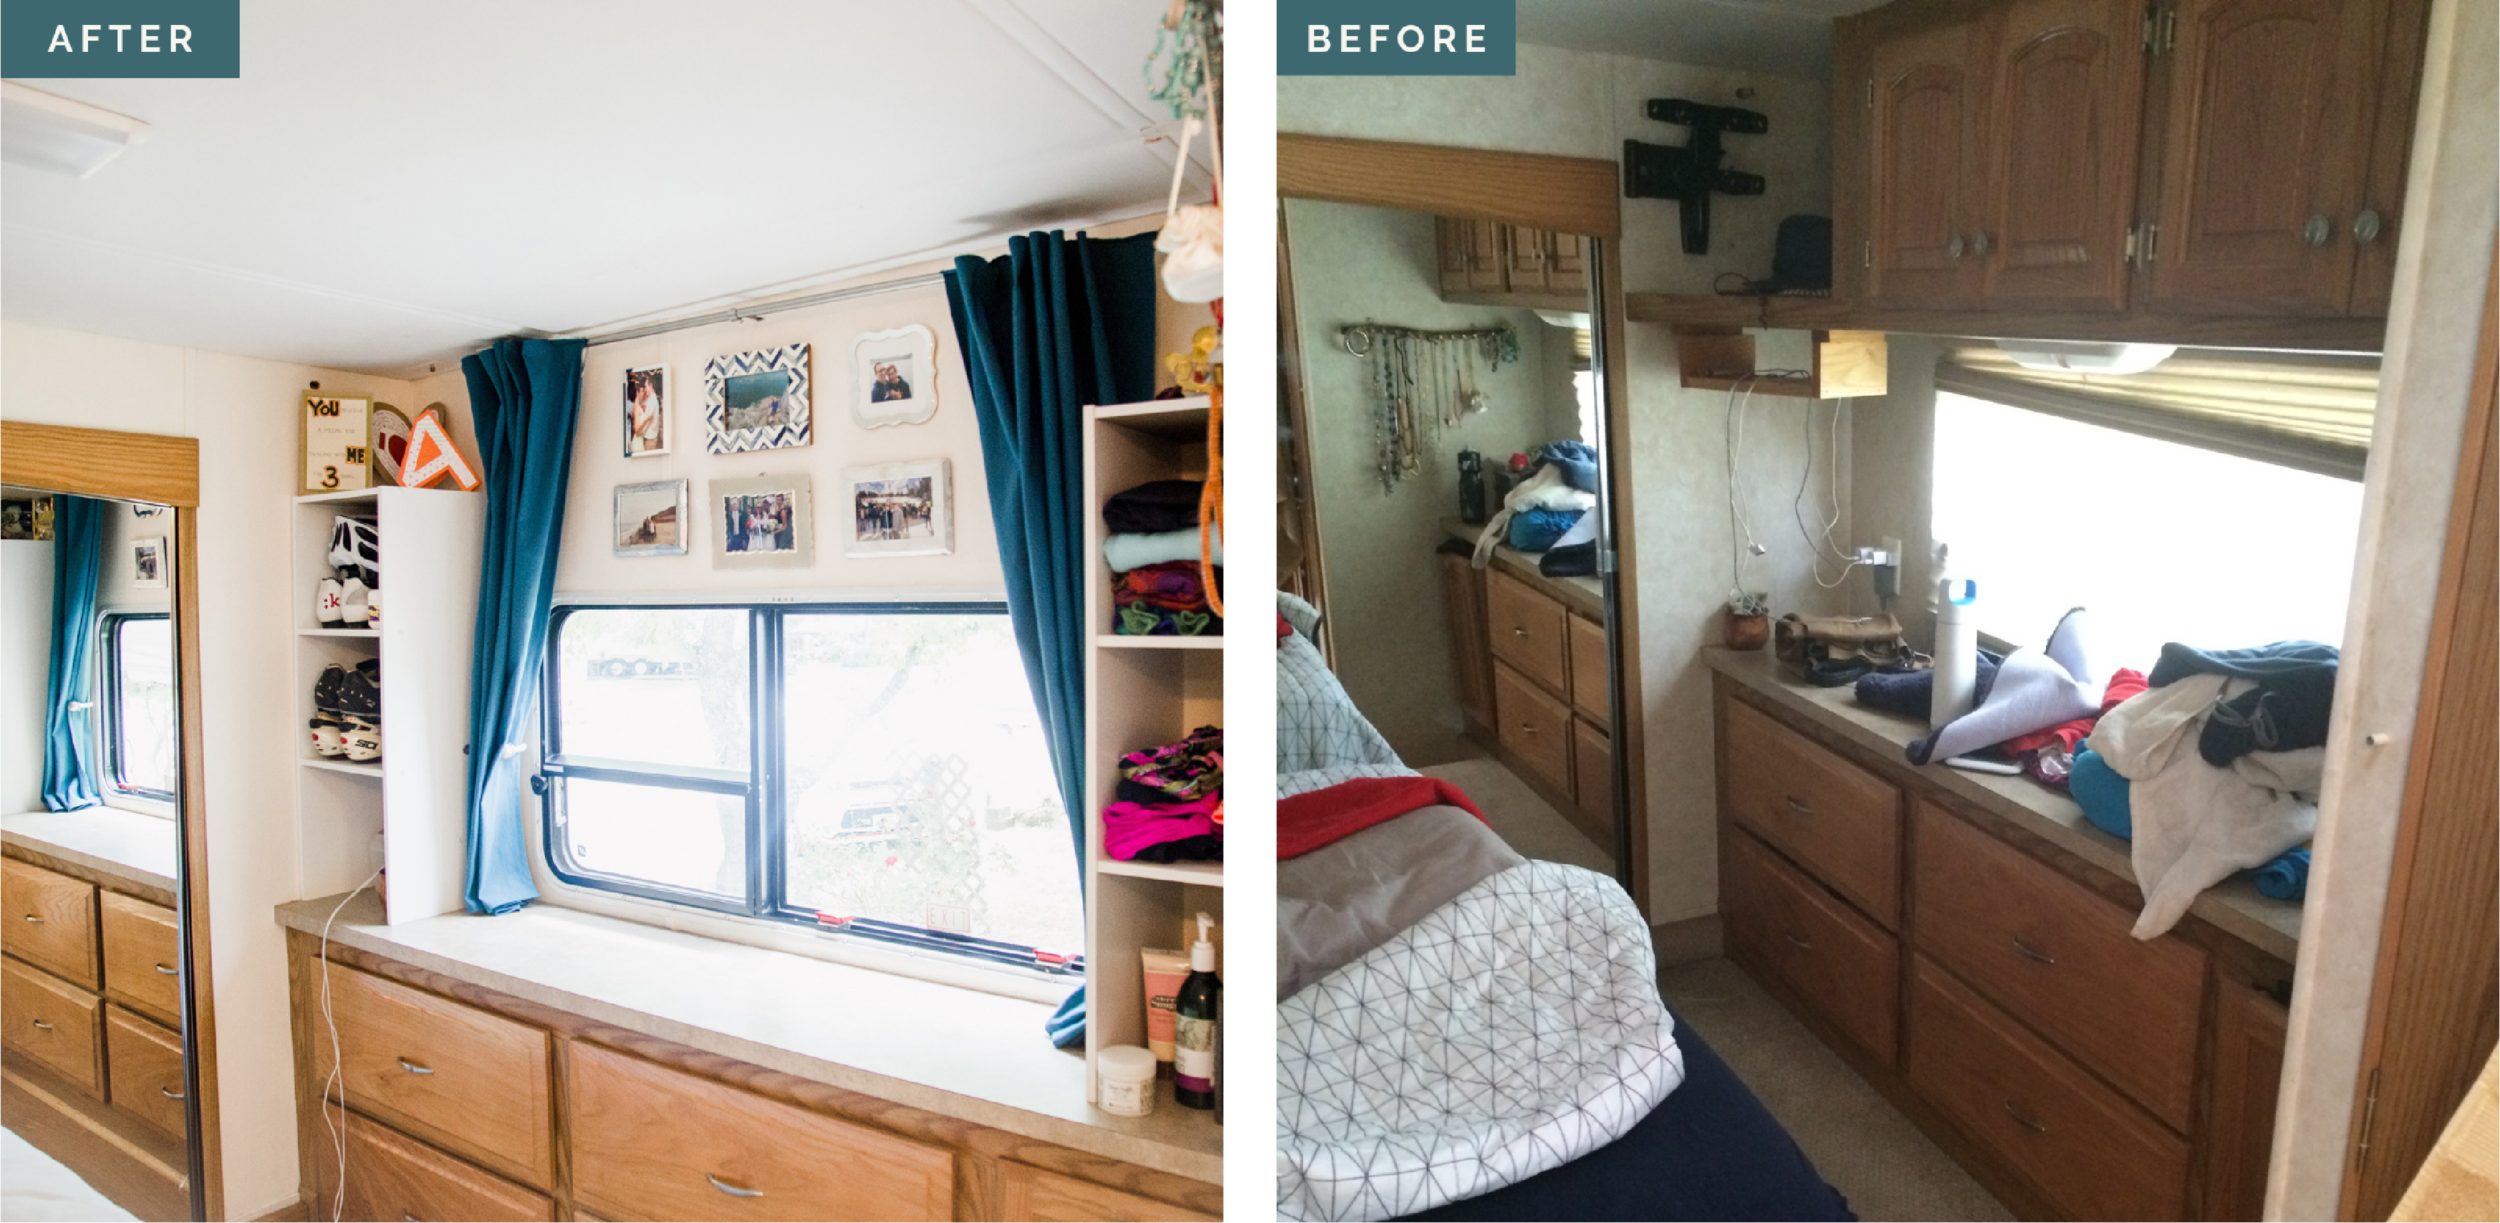 This before & after is from way back in the day... Husband and I 👫 lived in and renovated an RV 🚌 when we lived in Texas 🌵. We opened up the bedroom 🛏 by demolishing 🔨 the old upper cabinets and painting the walls a lighter color. Add some vertical shelves from Target, DIY curtains, and a small photo 📸 collage and voila! 🤗 People don't realize how those overhead cabinets can make a space feel so much smaller 👎🏻. Whether you're in a tiny house or a typical house. A few strategic (and cheap 💵) DIY moves can mean a whole new look.  Check out the rest of the renovation 🛠 in my gallery. Link in bio. ☝🏻